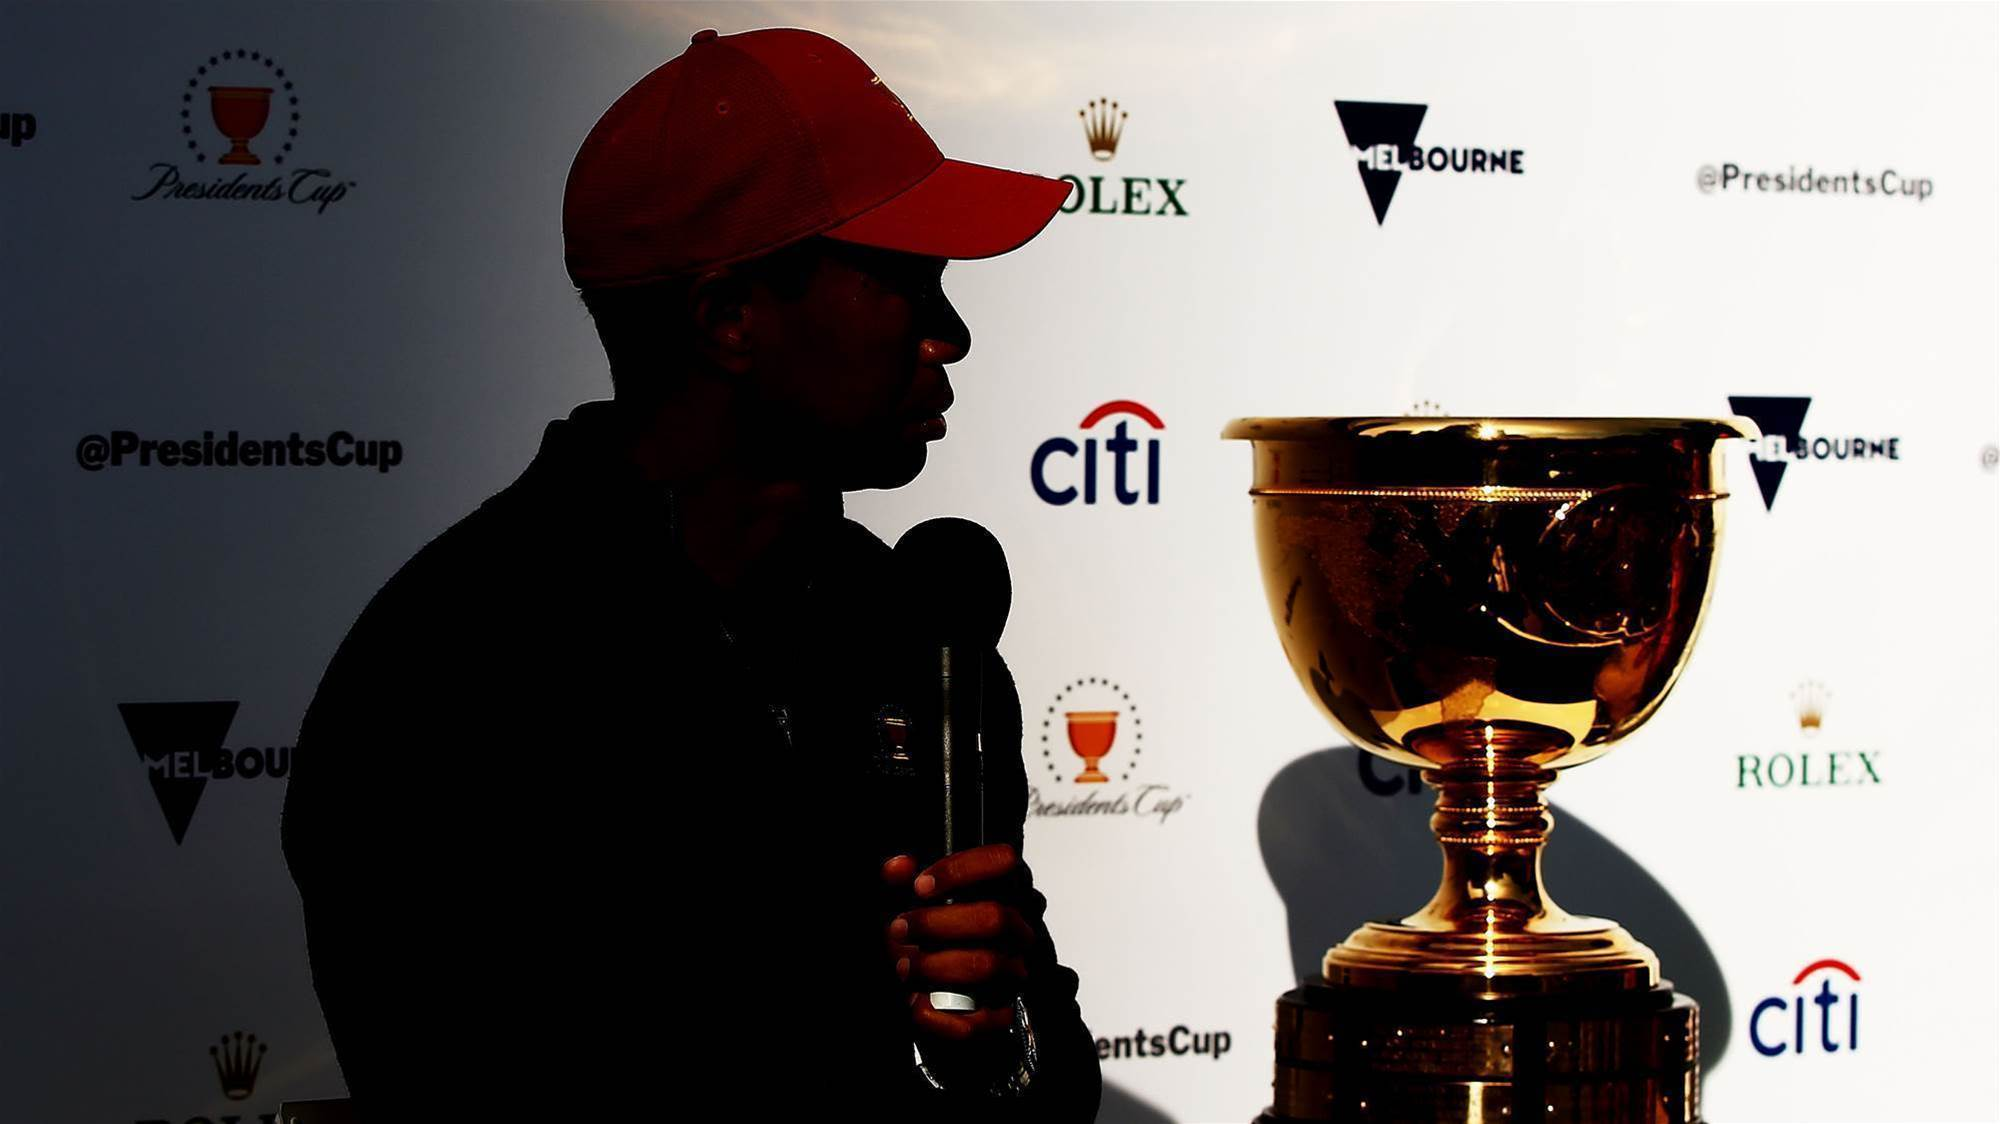 Are Tiger and his men fair dinkum about the Presidents Cup?